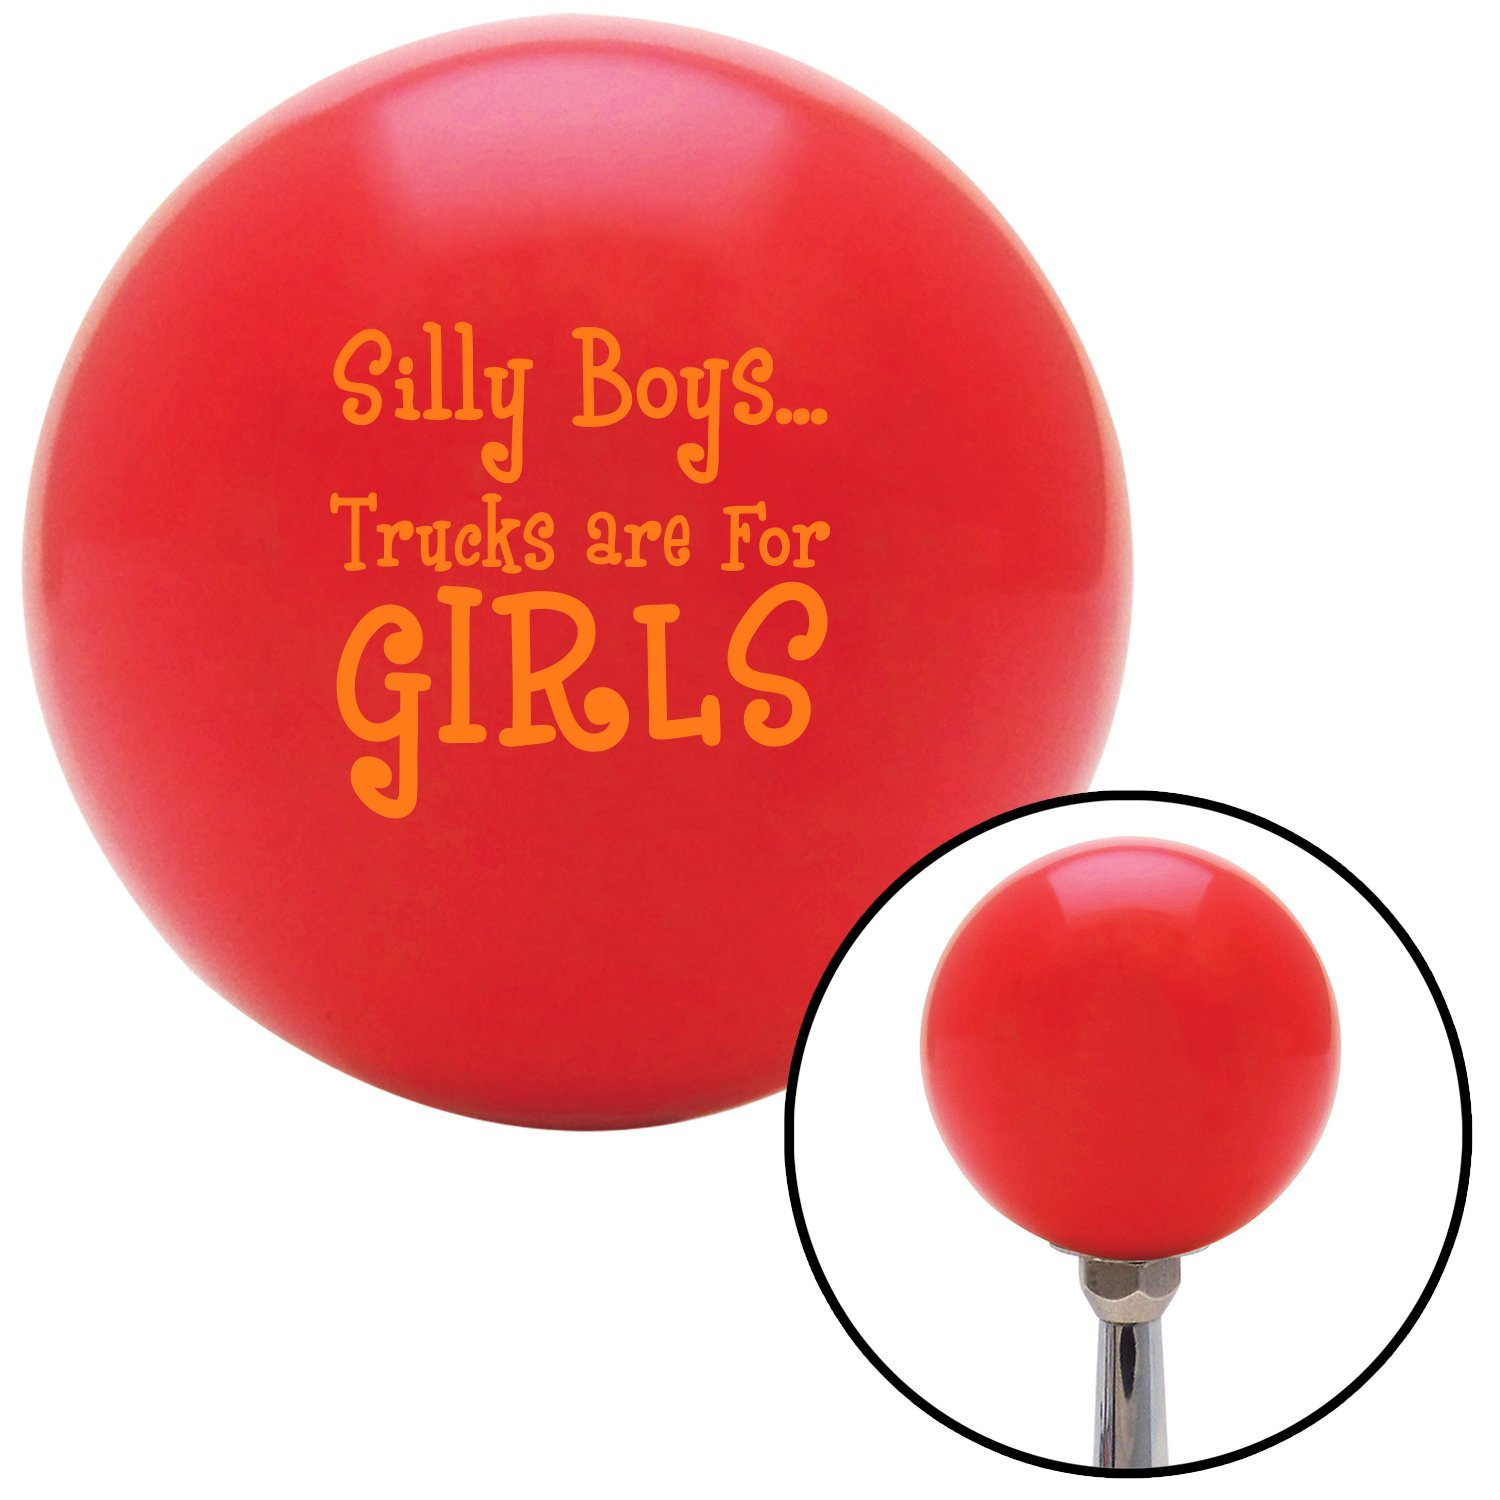 American Shifter 28914 Red Shift Knob Orange Silly Boys.Trucks are for Girls